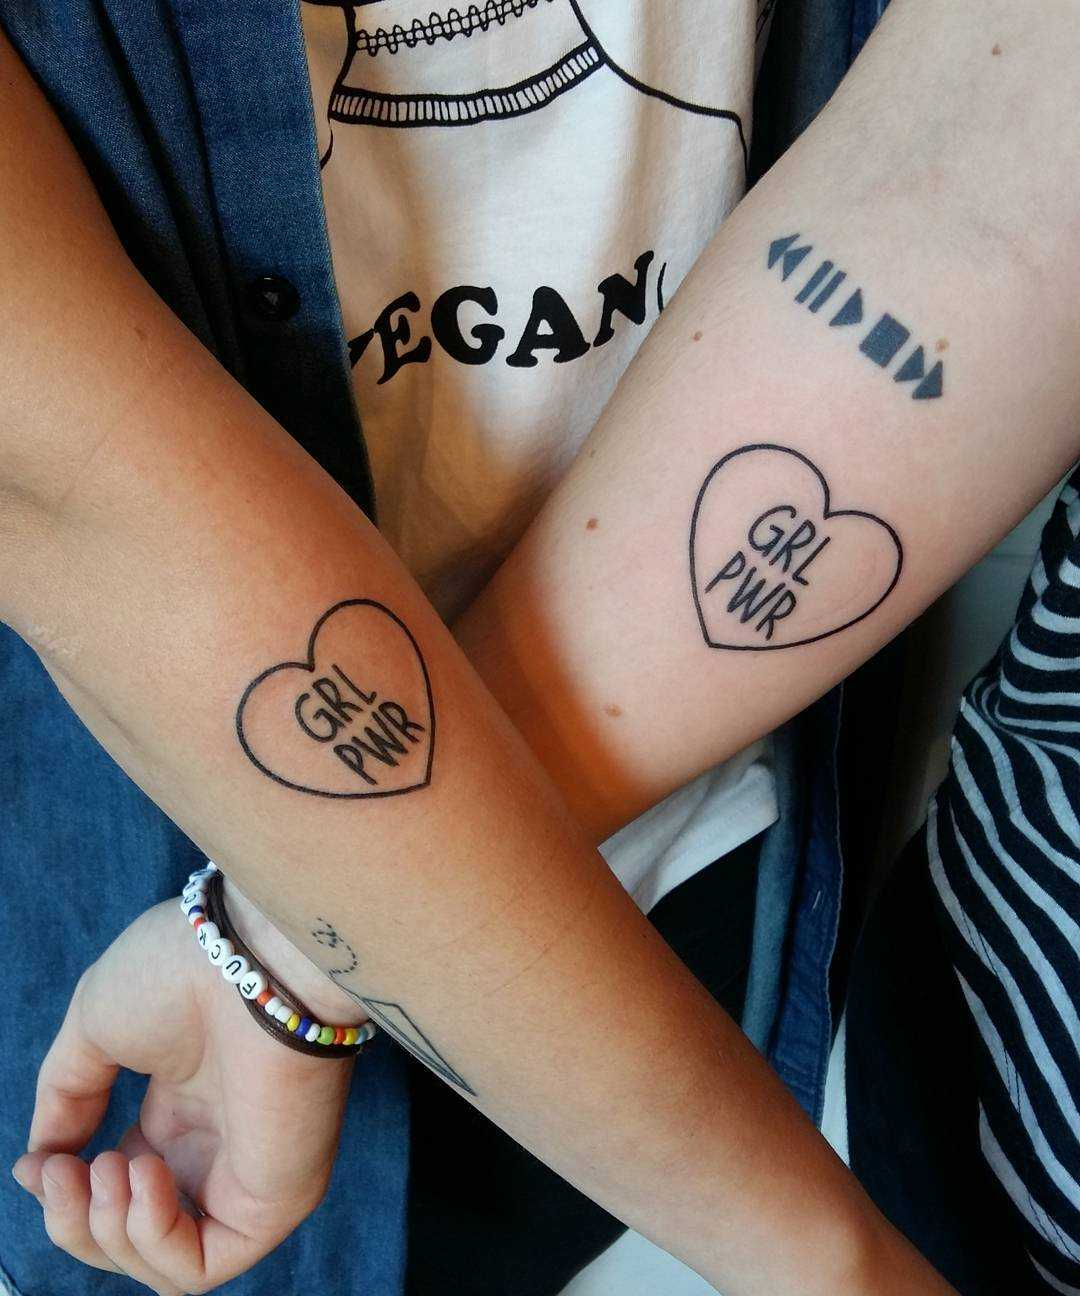 Matching GRL PWR tattoos by Lara Simonetta